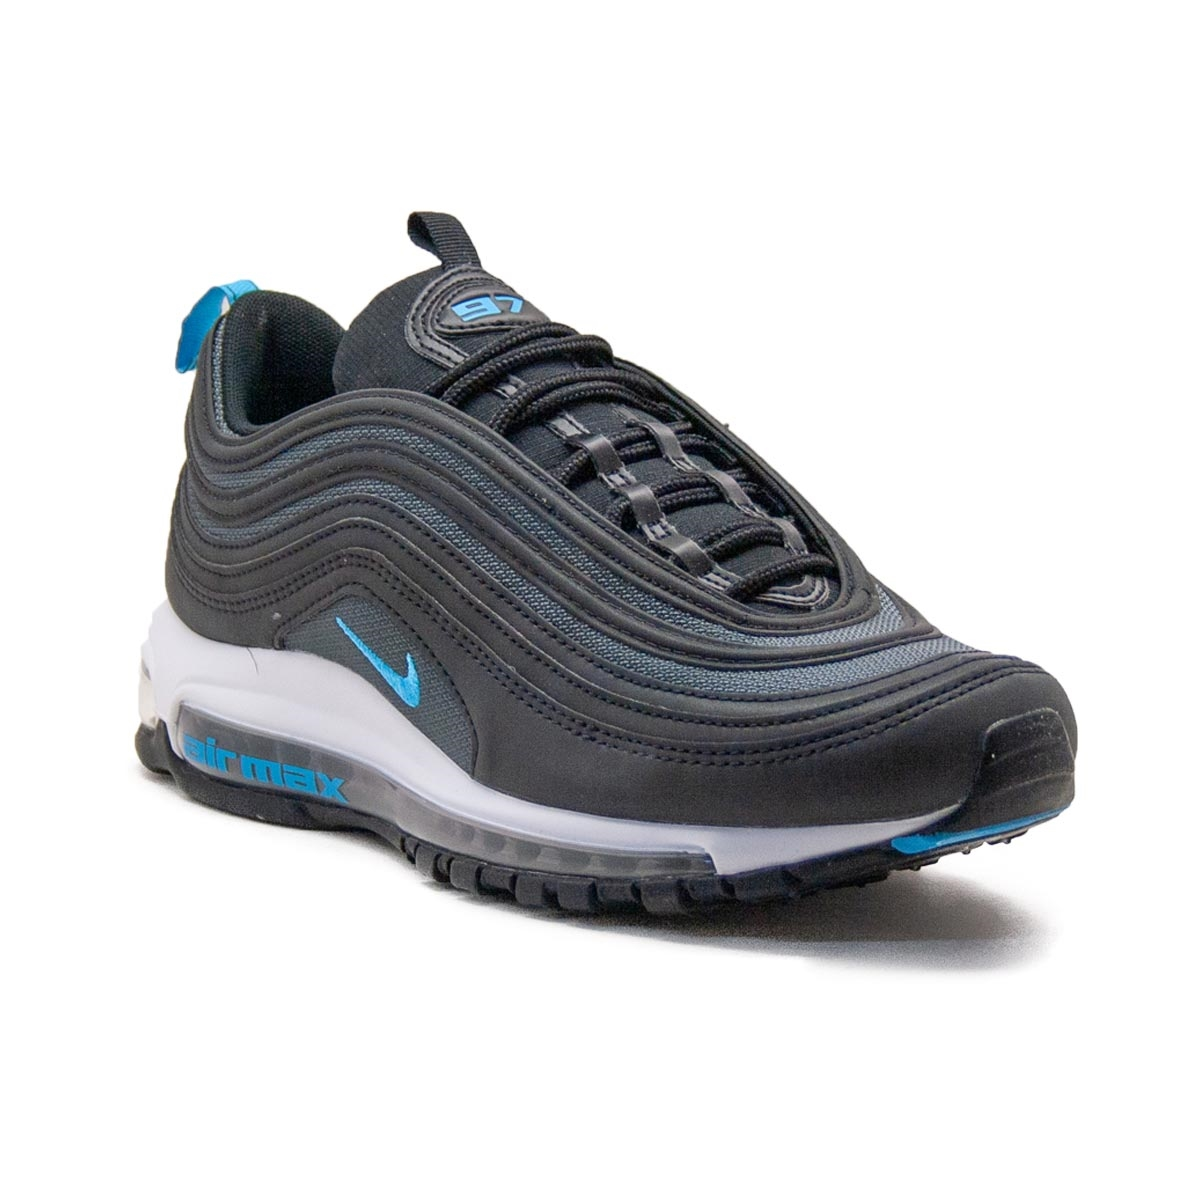 db42241fb2a0d Sneakers Nike Air Max 97 Qs Blue Fury BV1985-001 | Freesneak